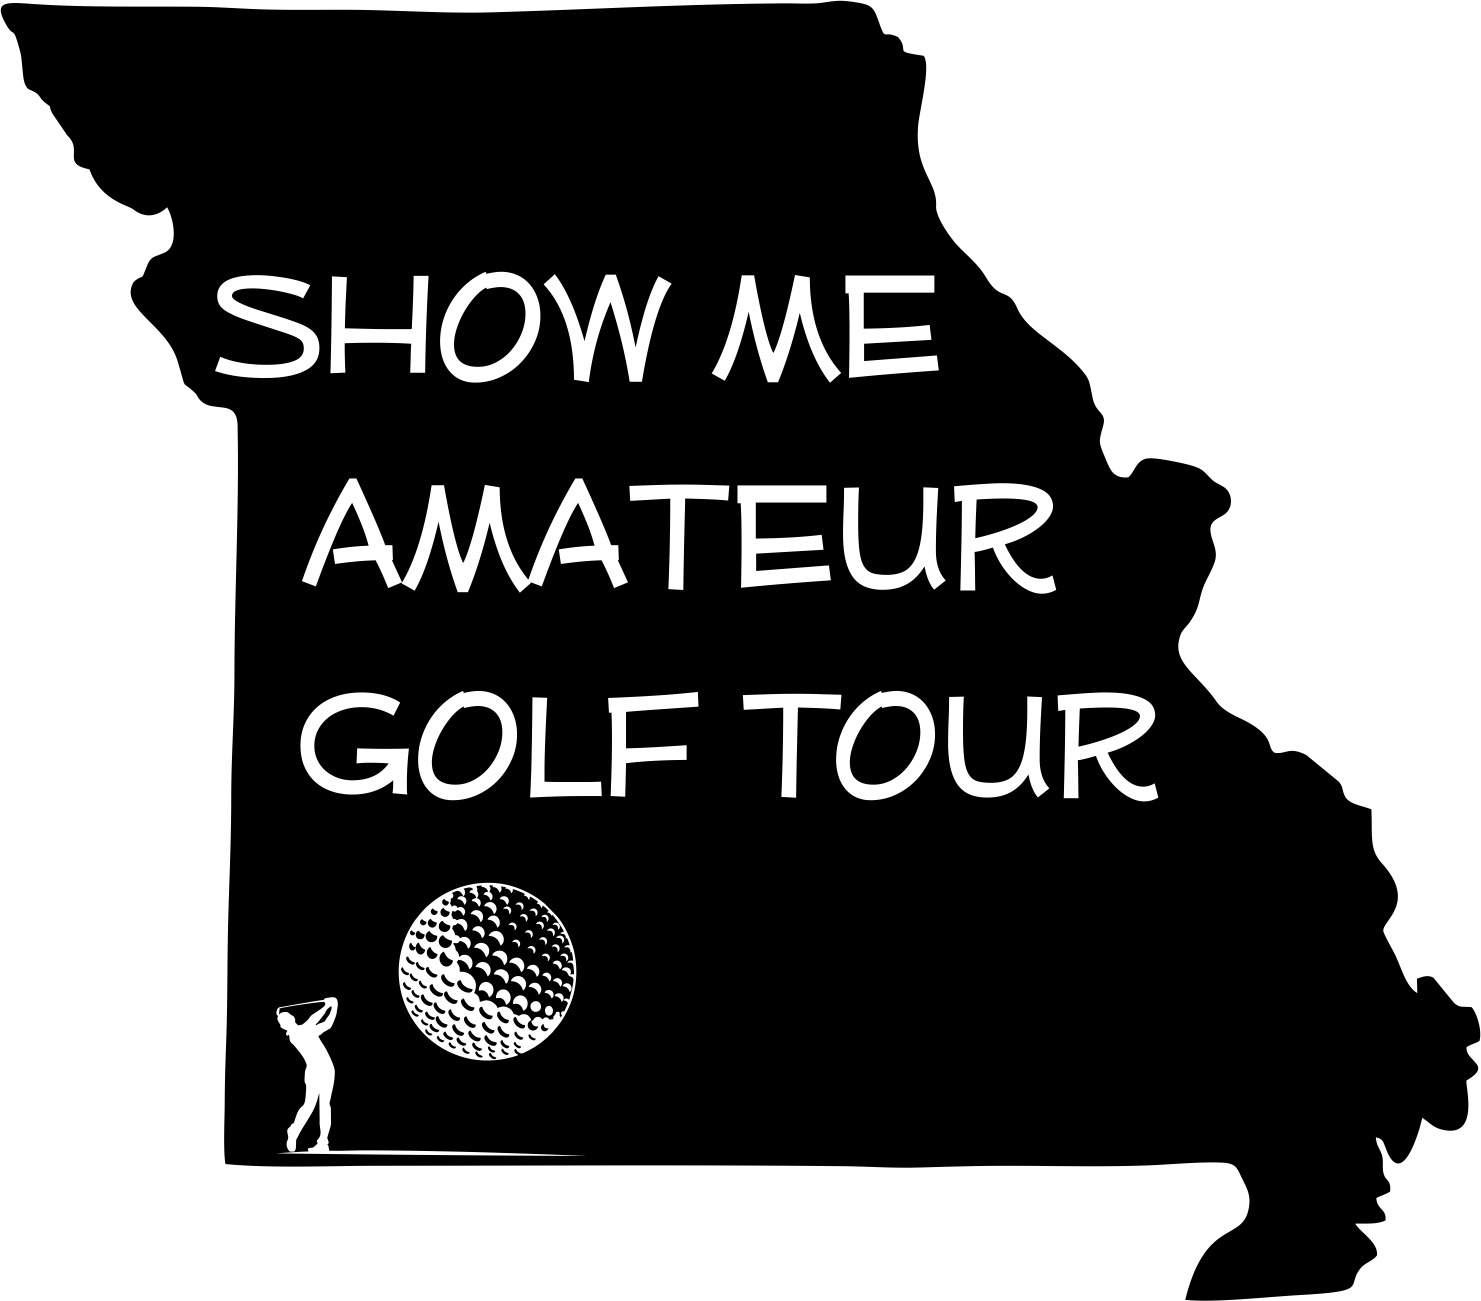 SHOW ME AMATEUR GOLF TOUR BLACK.png